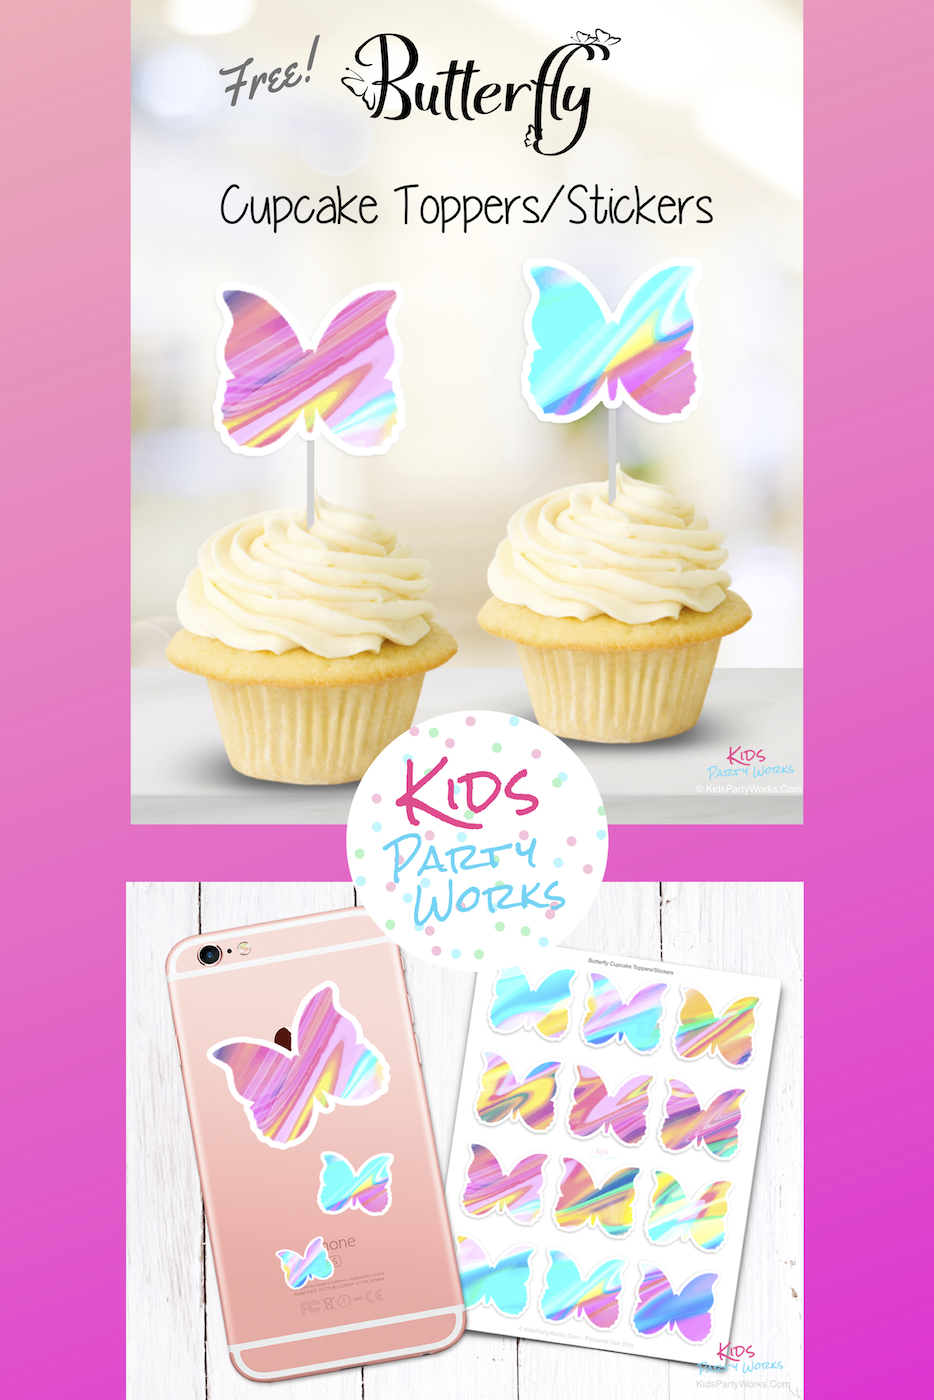 Free Butterfly Printable cupcake toppers, and also great for stickers. Visit KidsPartyWorks.Com for tons of free kids party printables.